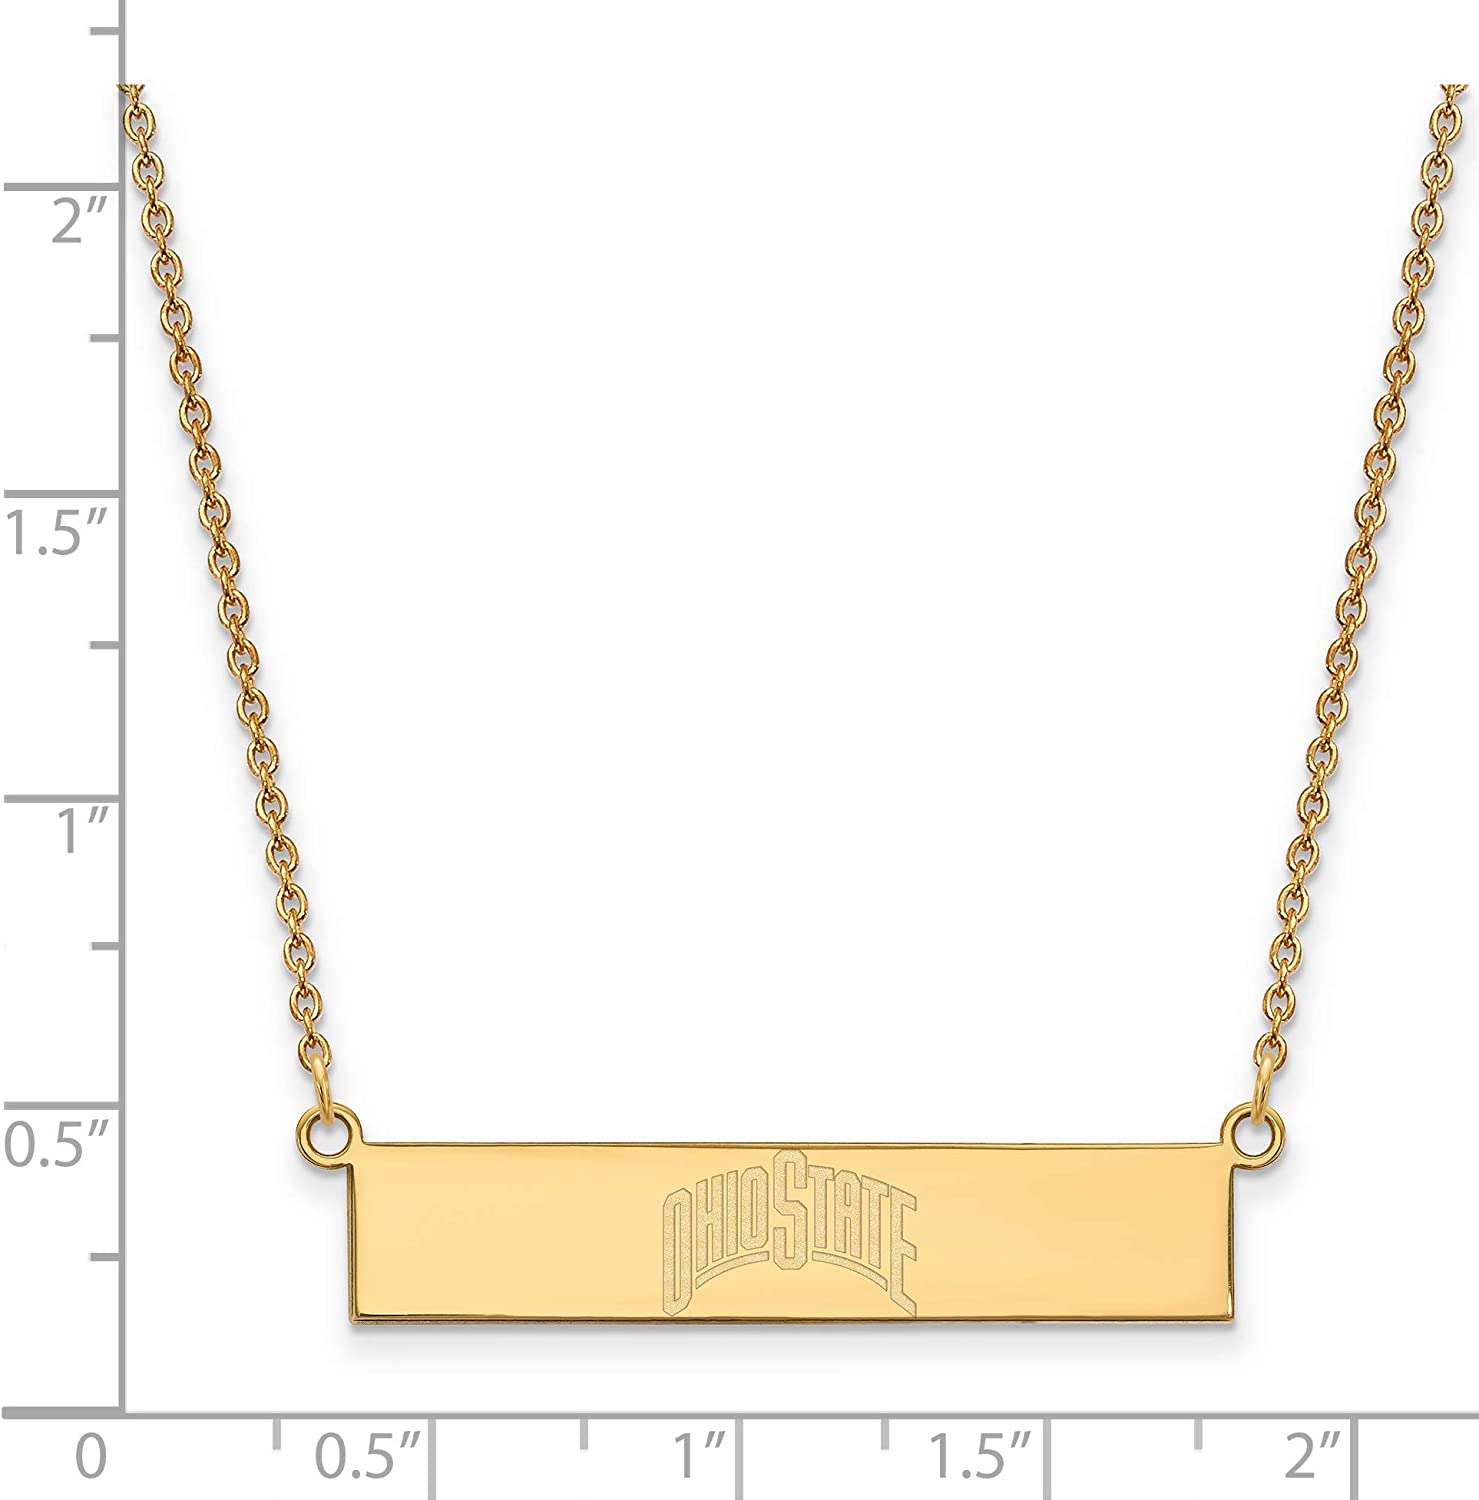 Ohio State University Buckeyes School Name on Bar Pendant Necklace in Gold Plated Sterling Silver18 Inches